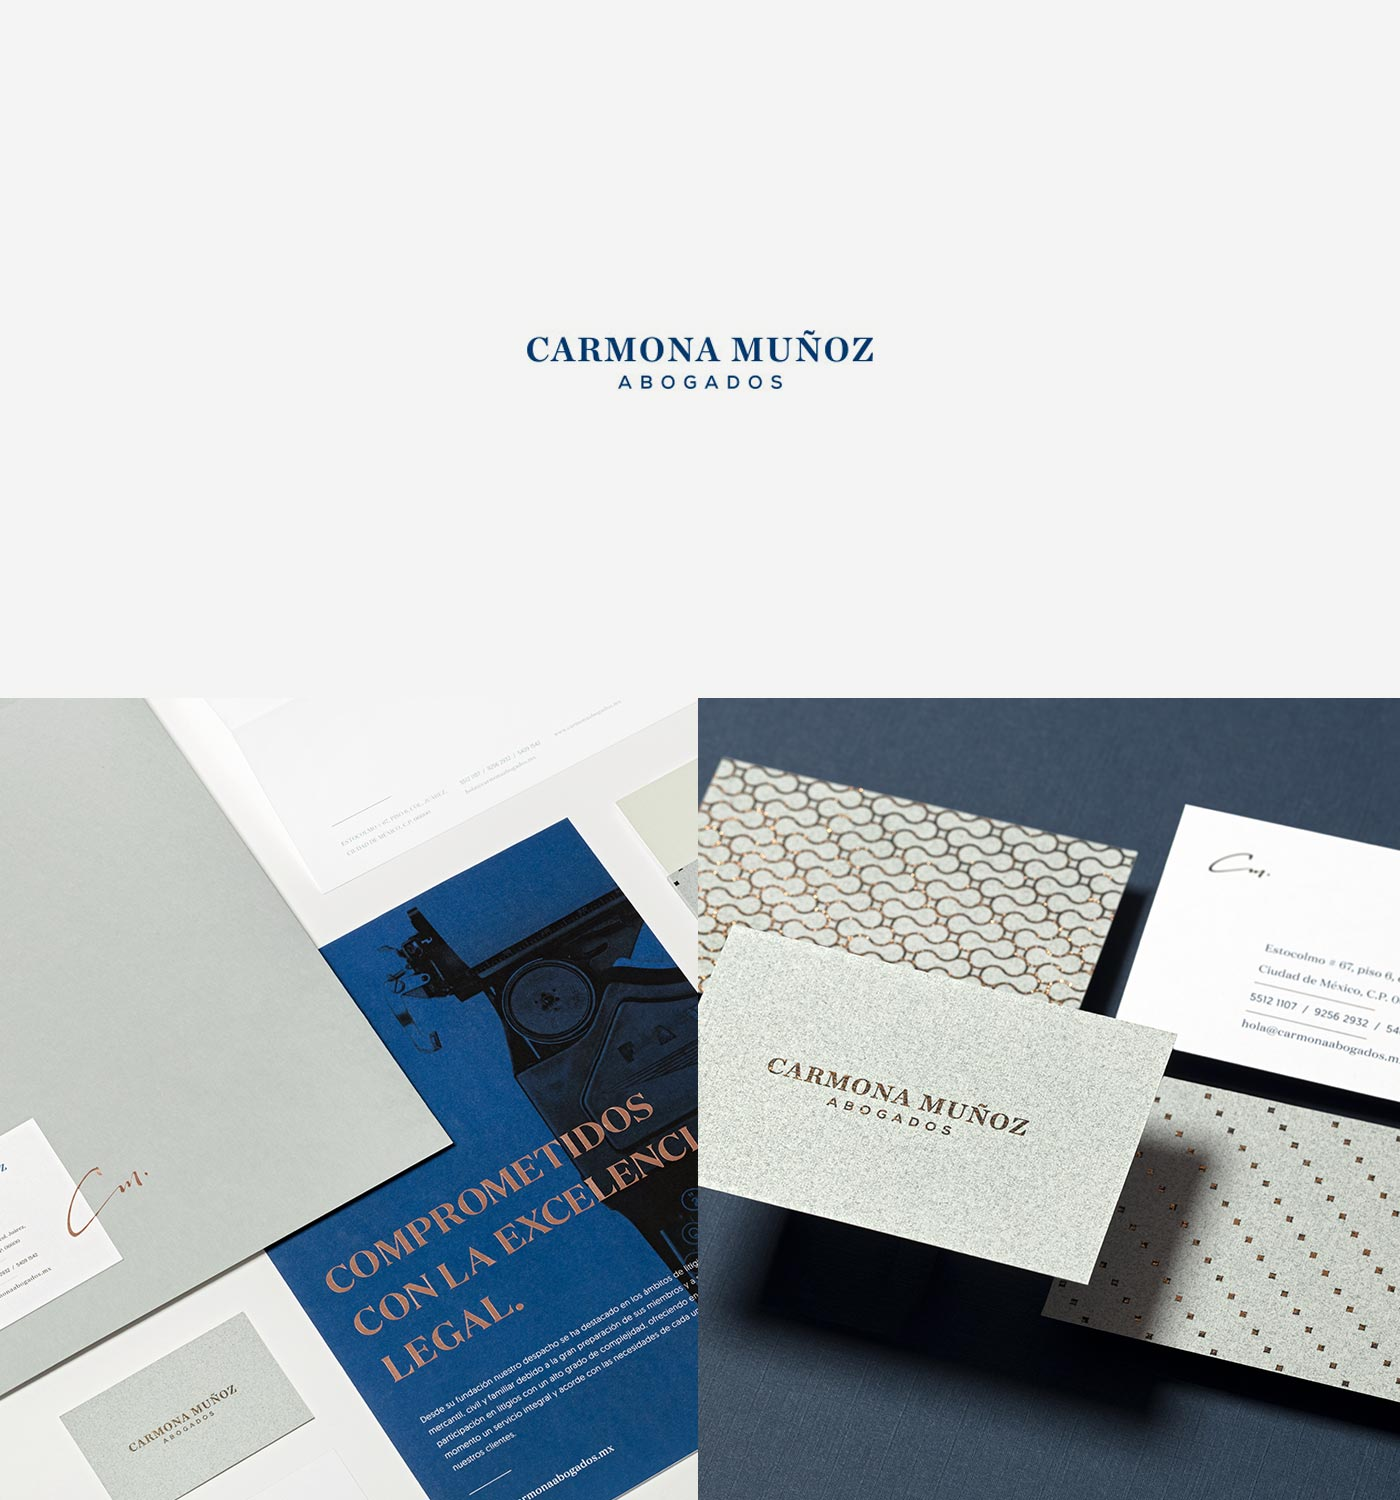 Carmona Muñoz Designed by The Branding People